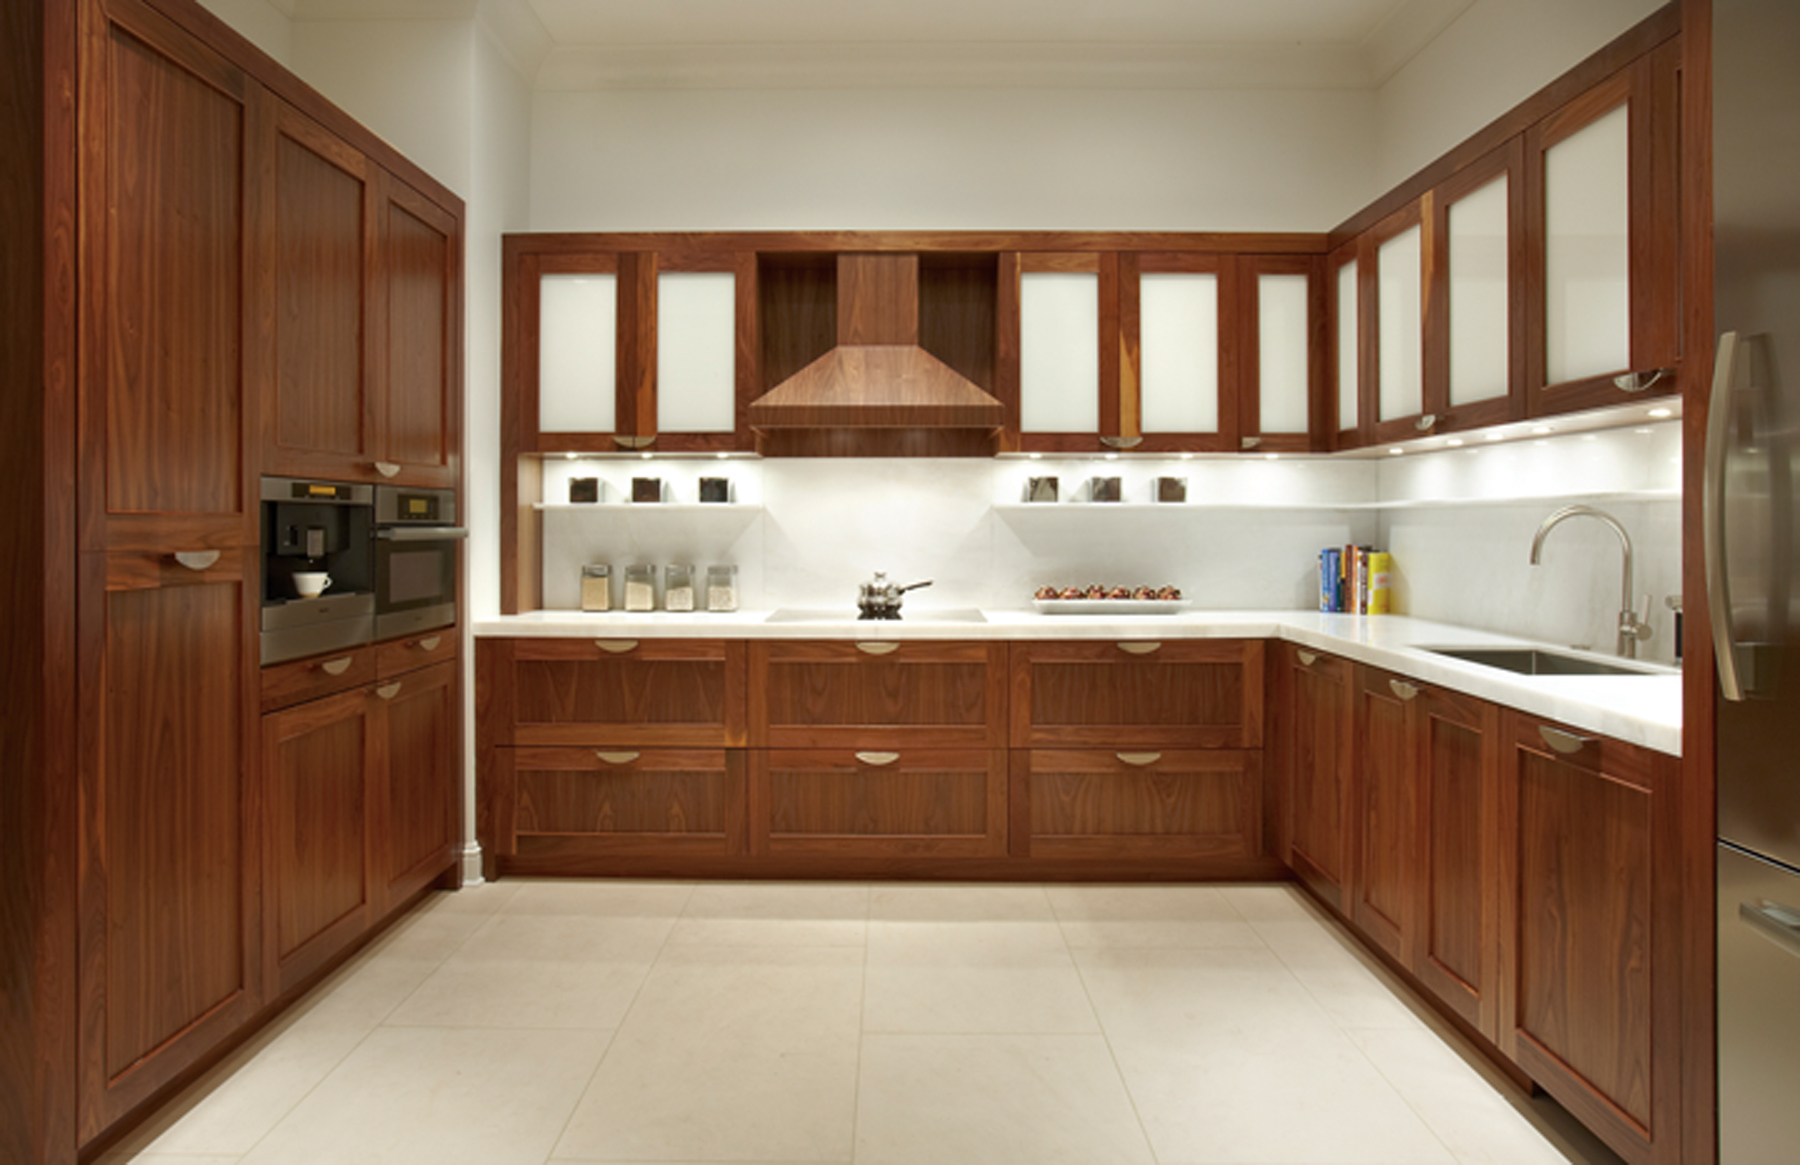 Kitchen Cabinets Images Pleasing Of Walnut Kitchen CabiDesigns Photos